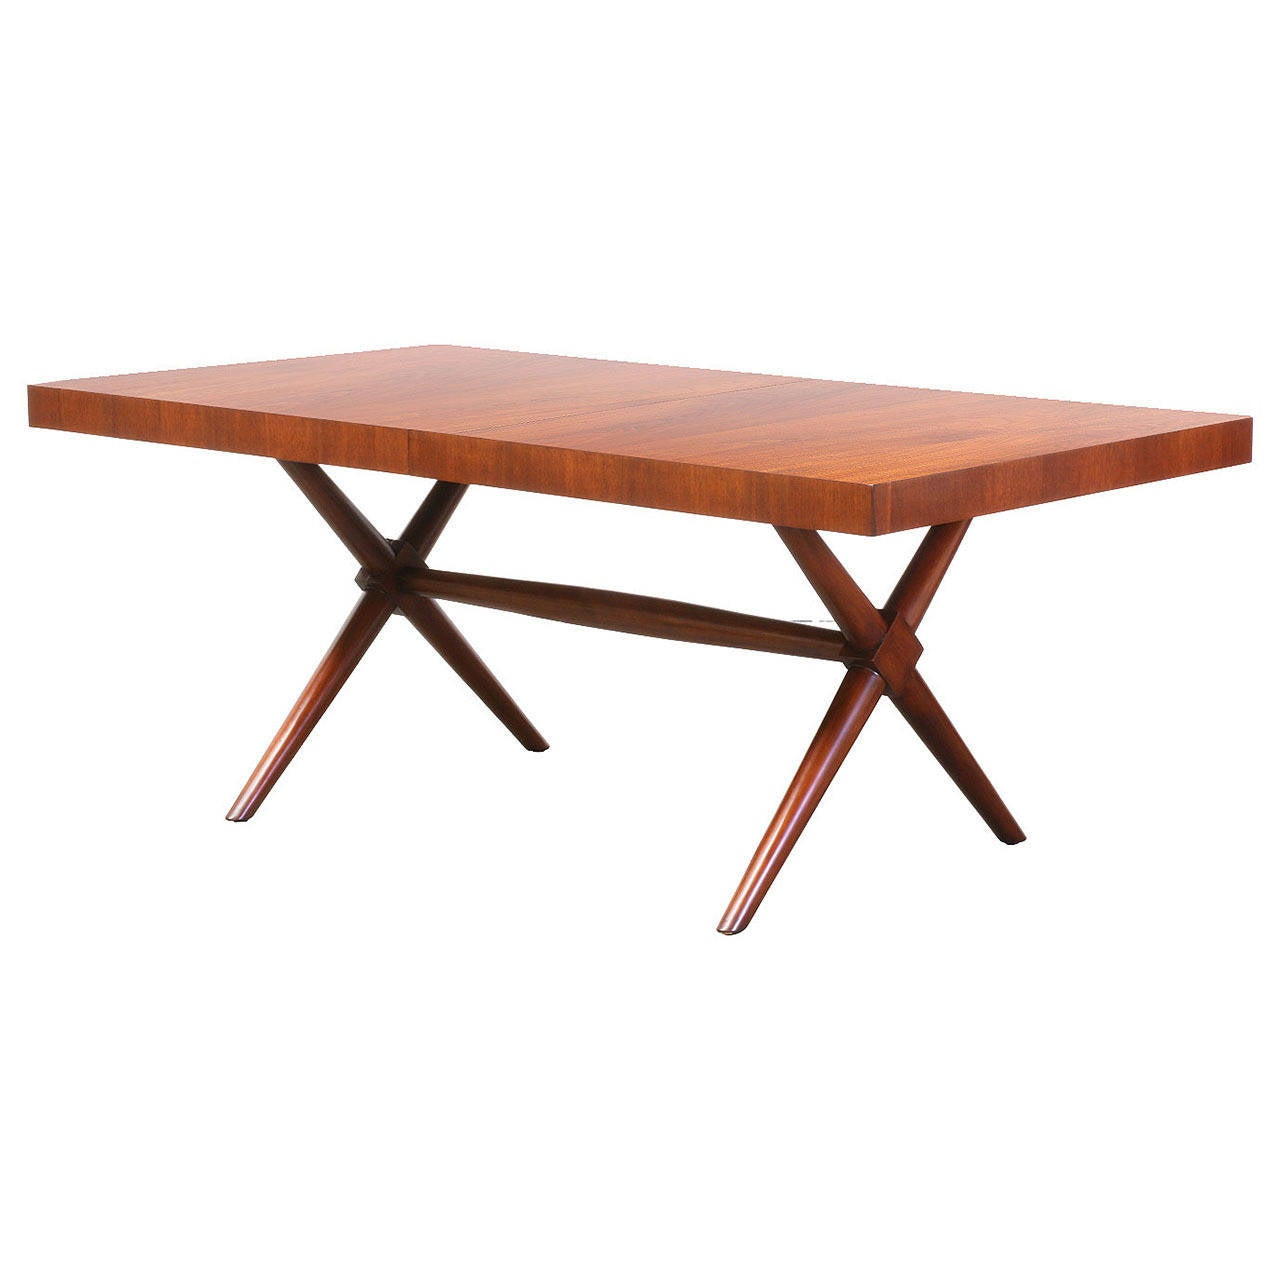 TH Robsjohn Gibbings X Base Dining Table For Widdicomb 1